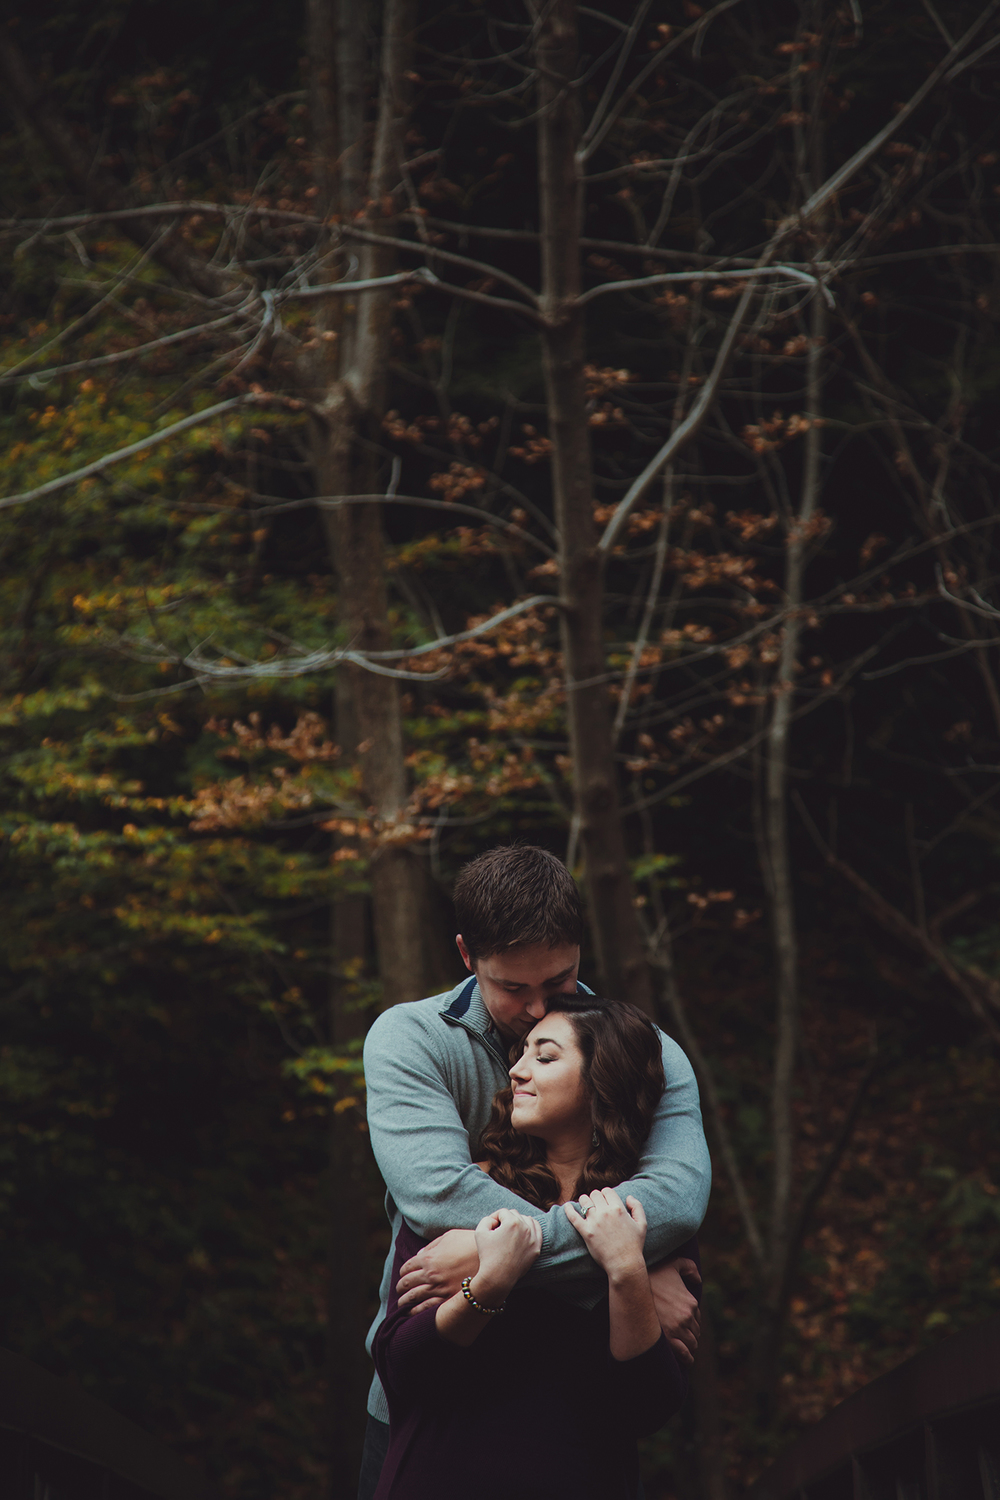 Engagement photo session at Chittenango Falls State Park.